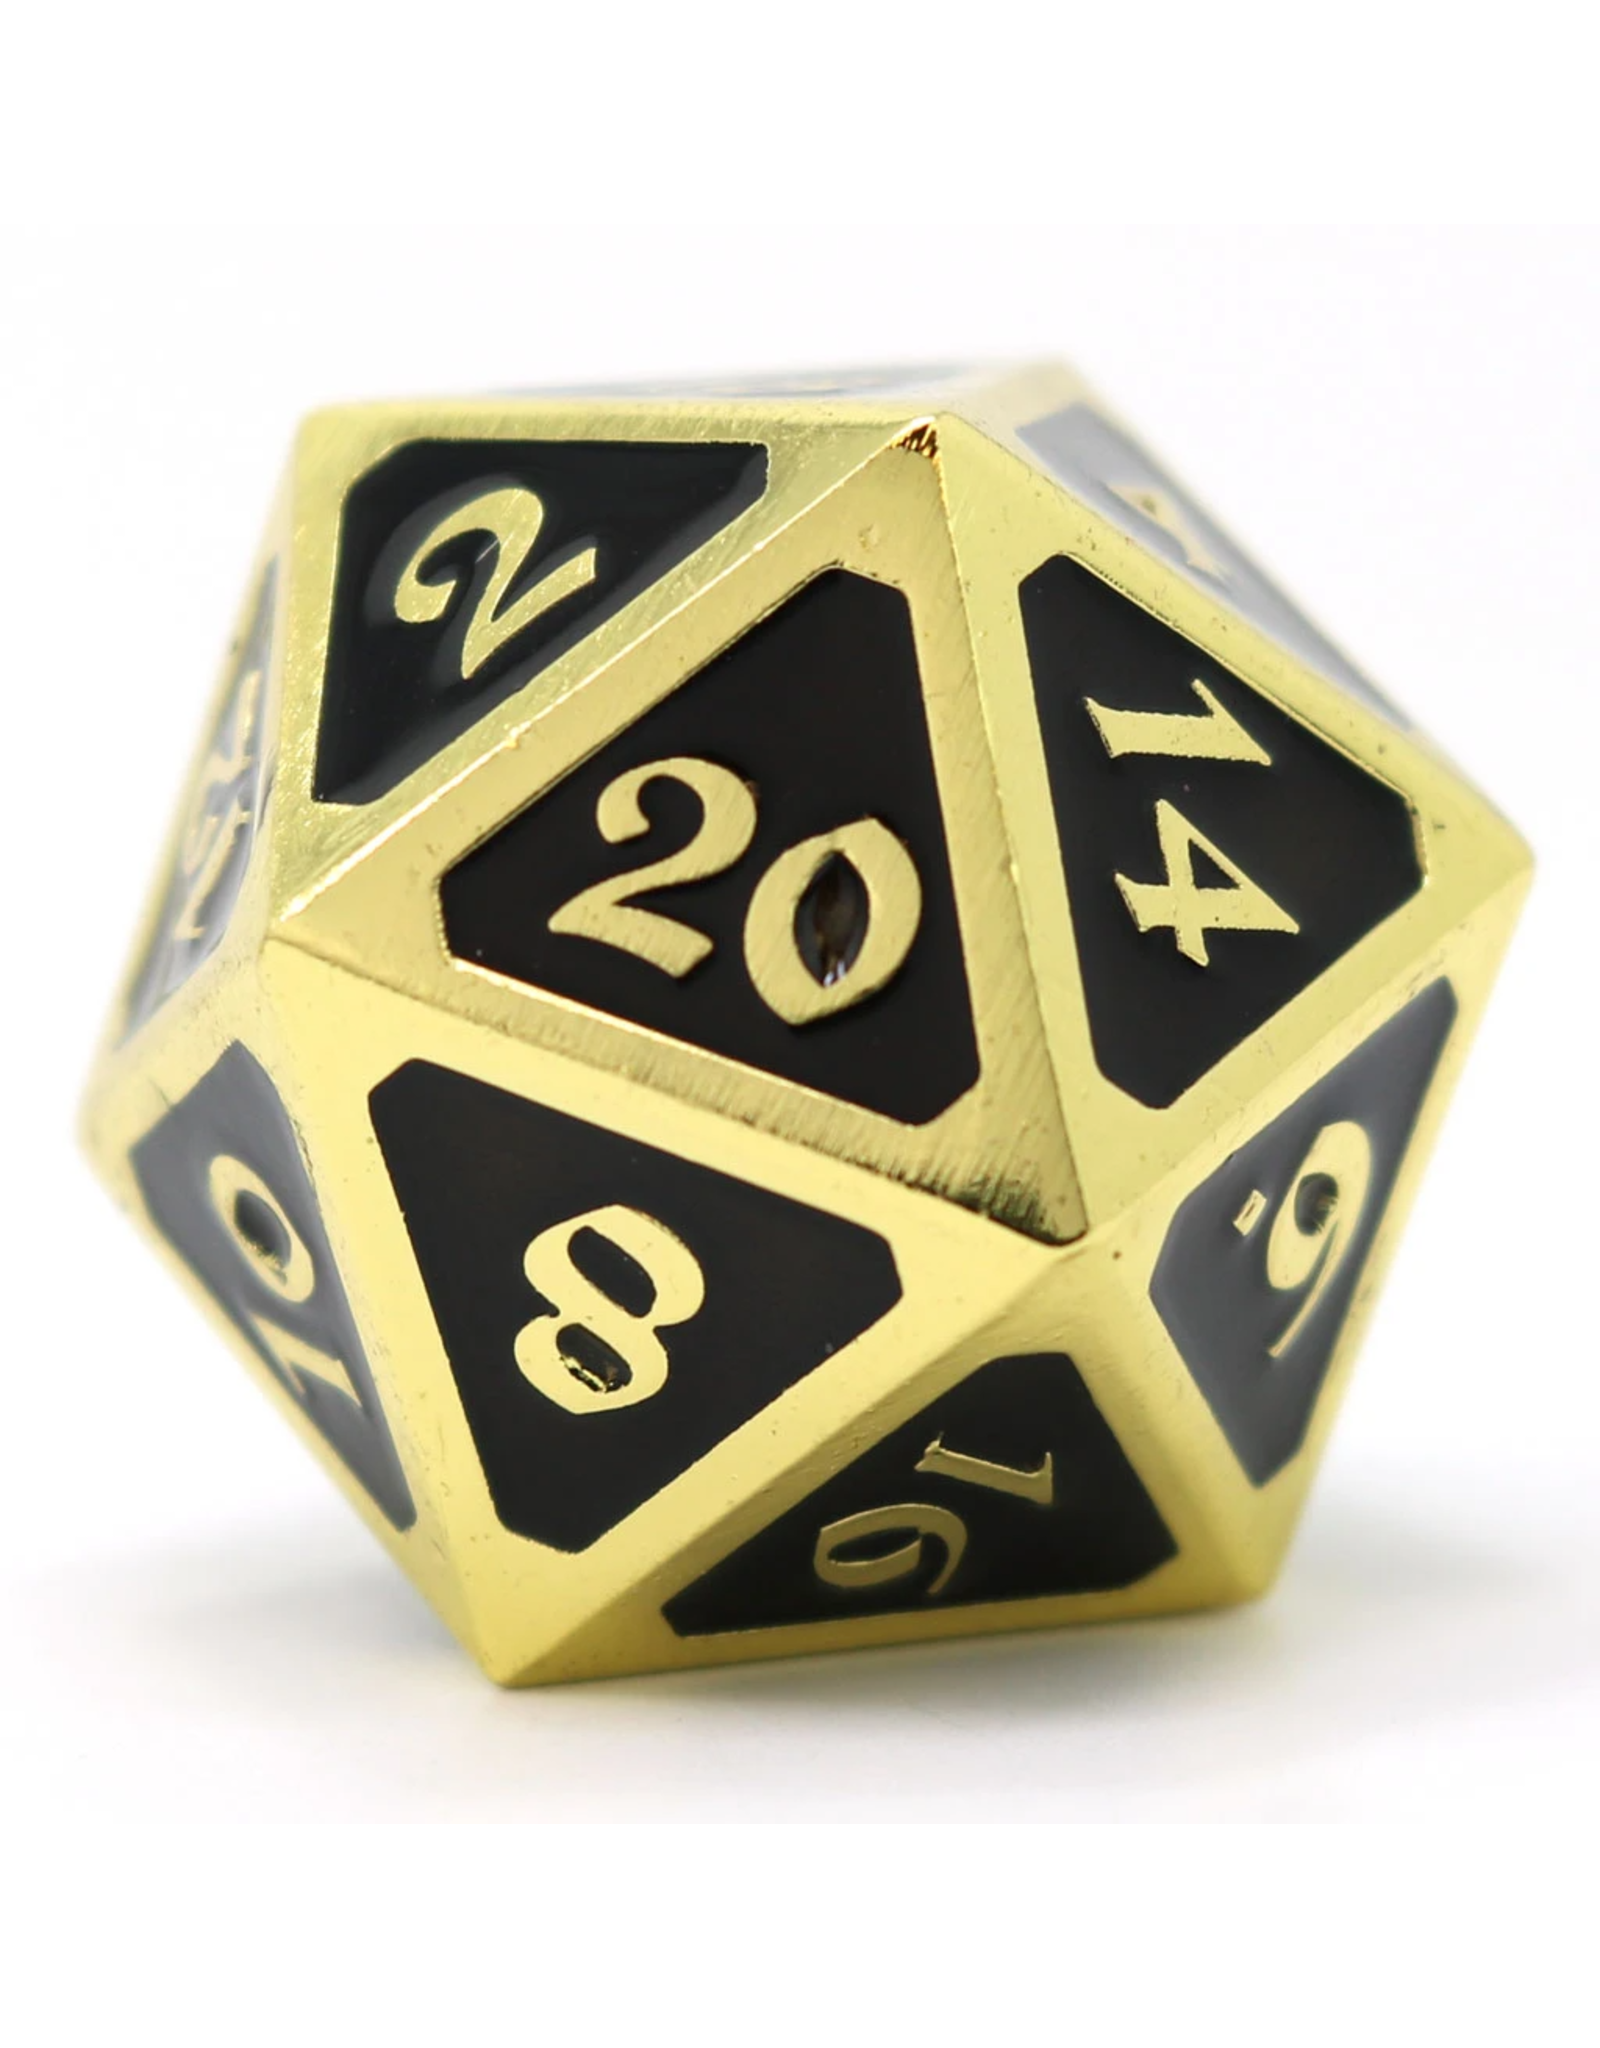 Die Hard Dice Die Hard Dice: Dire D20 Mythica Gold Onyx